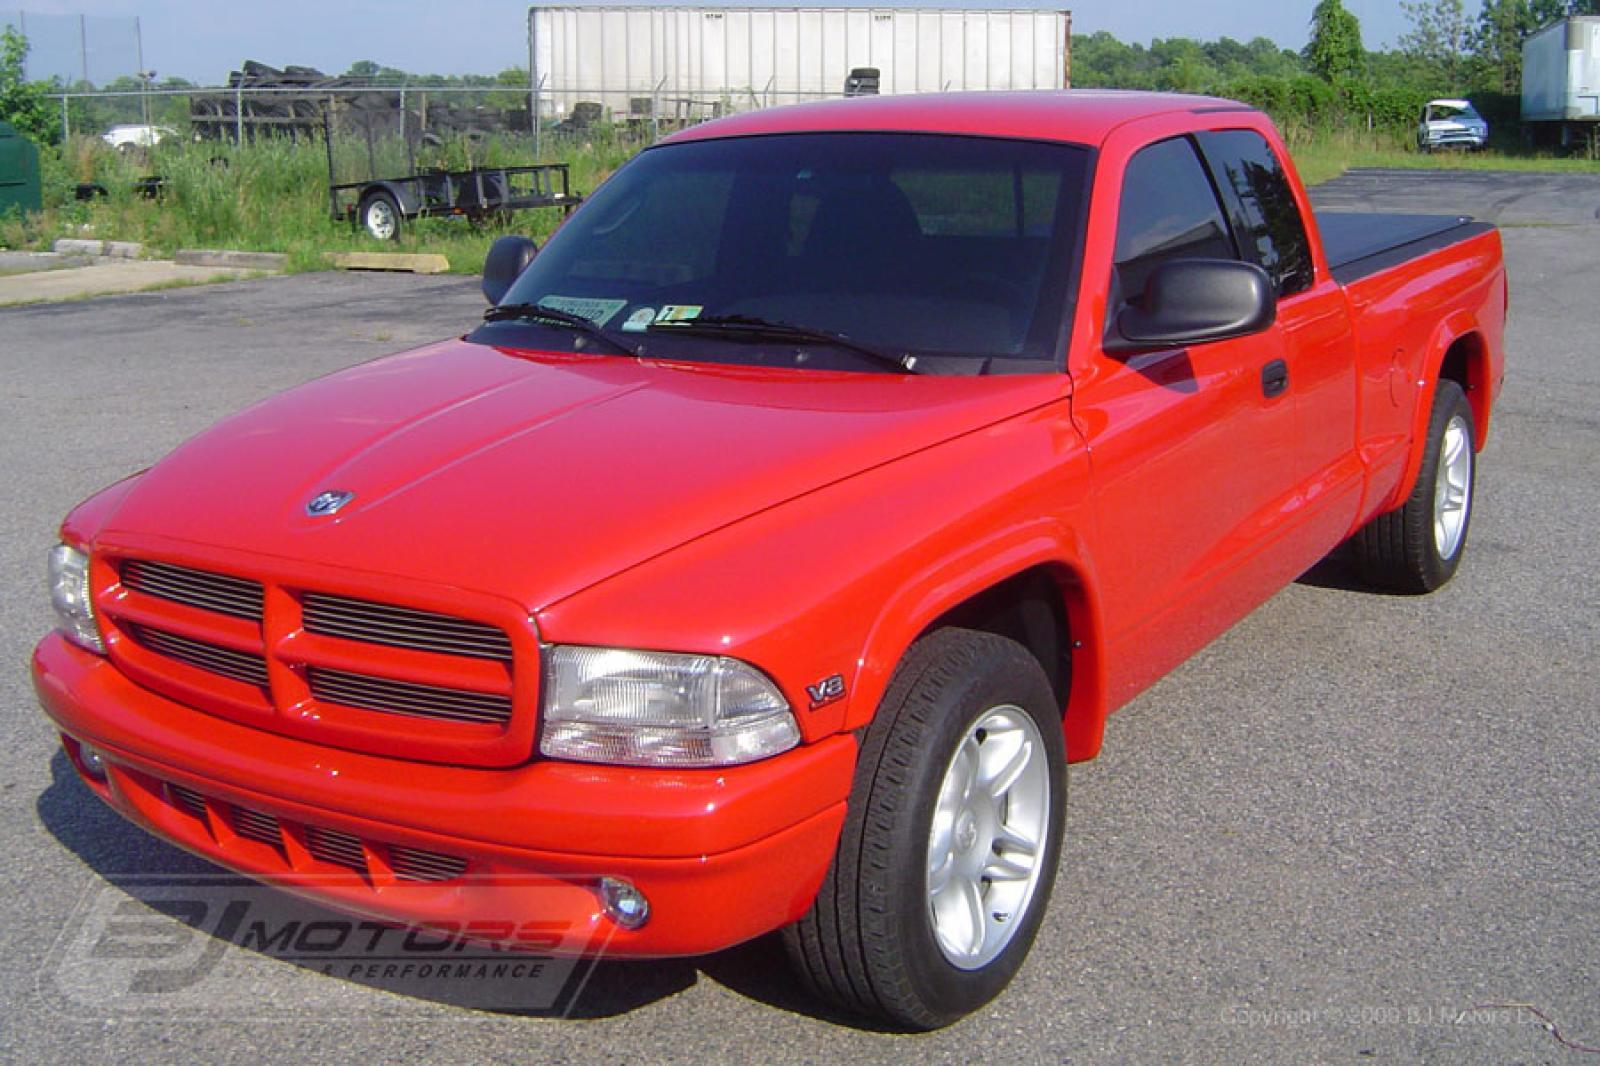 1999 Dodge Dakota Information And Photos Zomb Drive